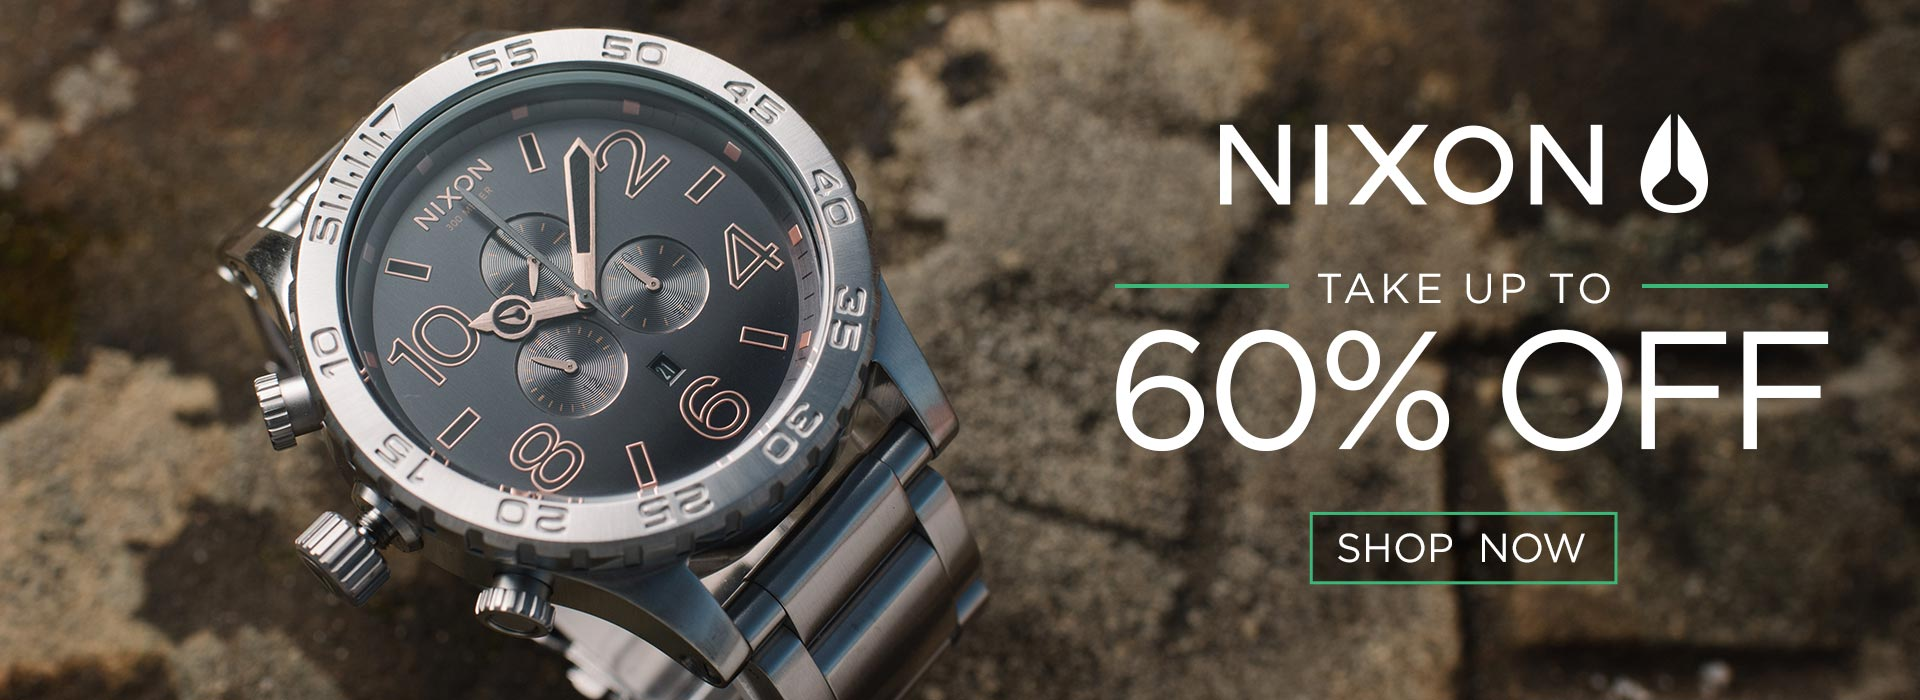 Nixon Watches 51-30 on Sale